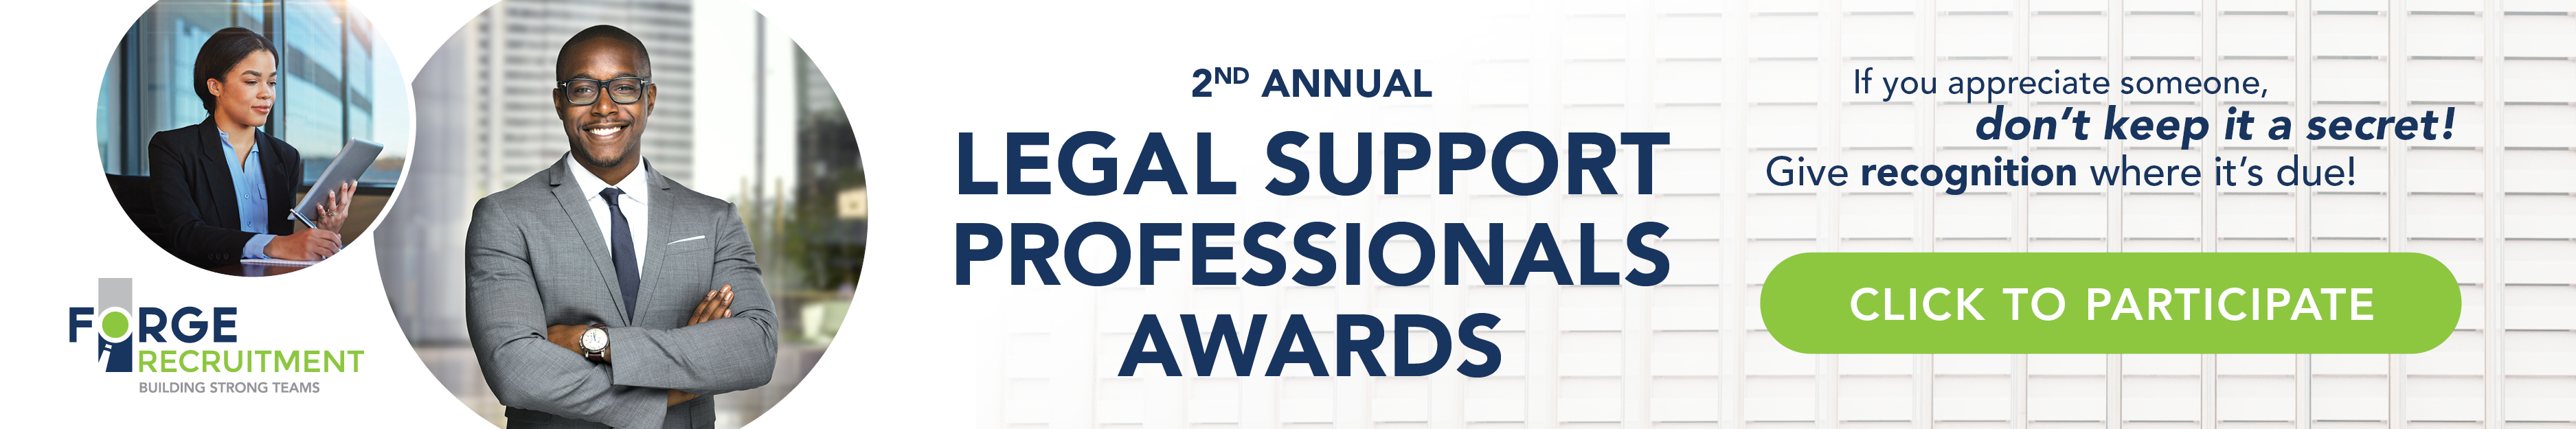 Legal Support Professionals Awards